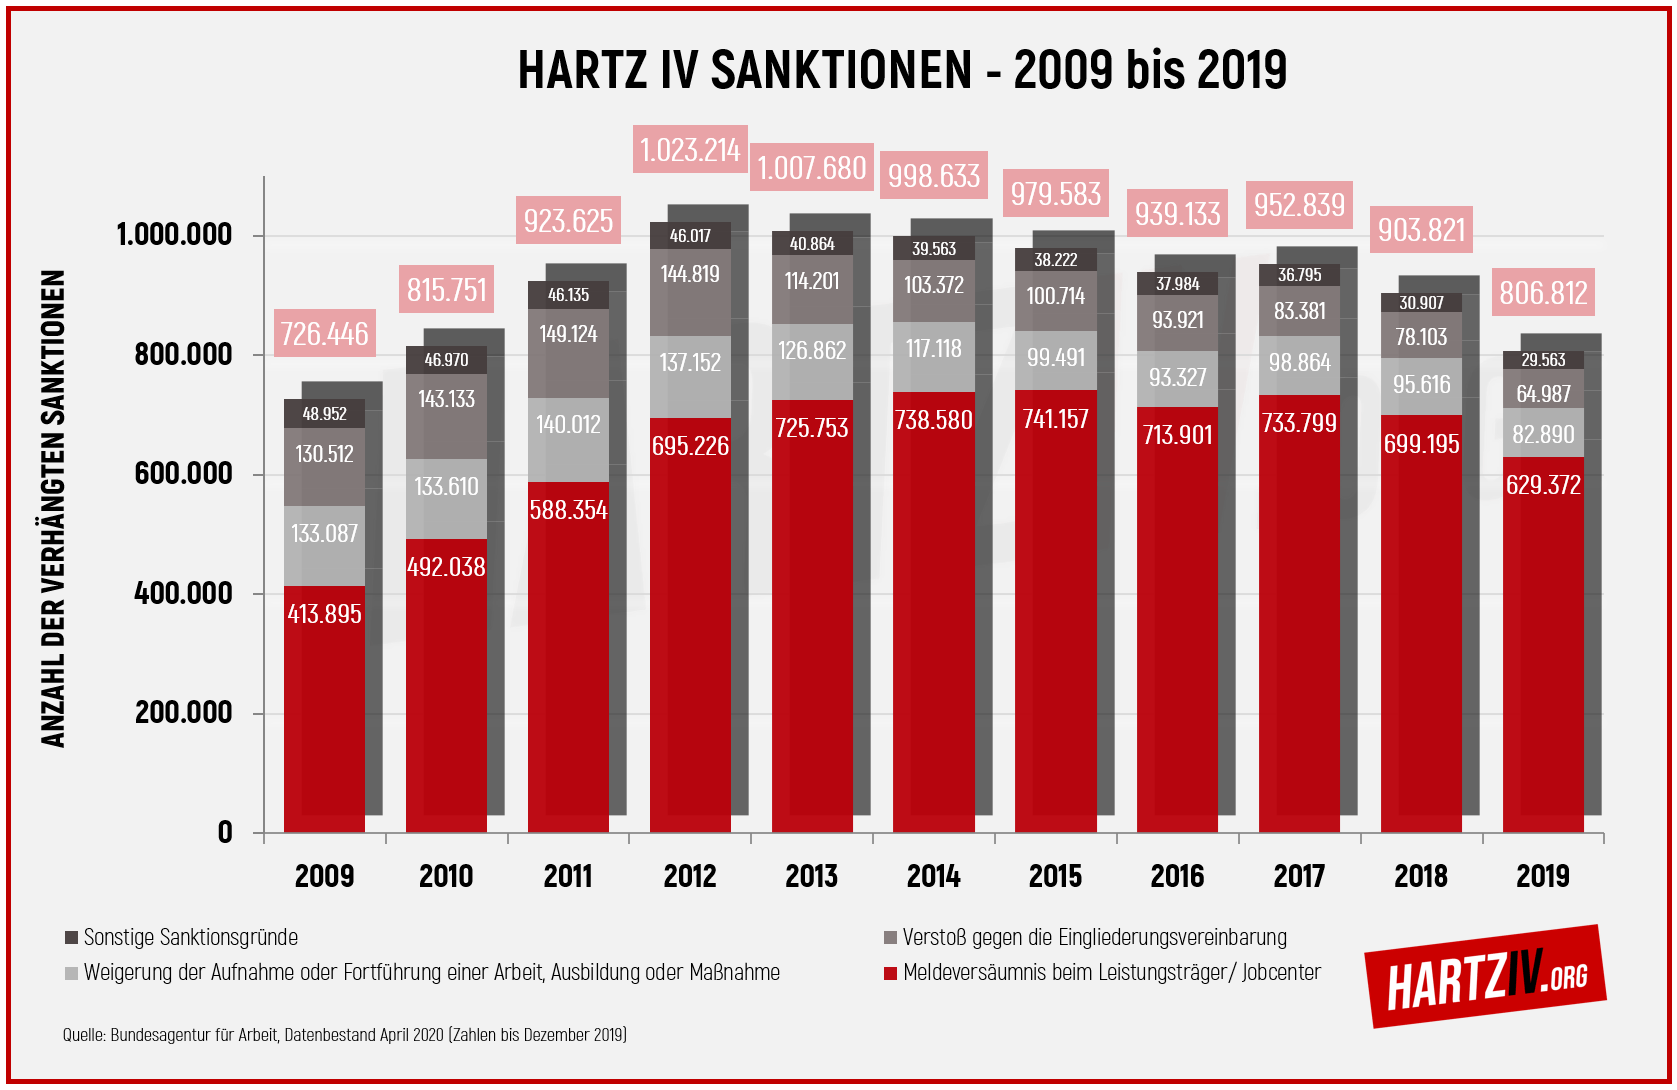 Statistik Diagramm Hartz IV Sanktionen bis 2019 (Stand April 2020)